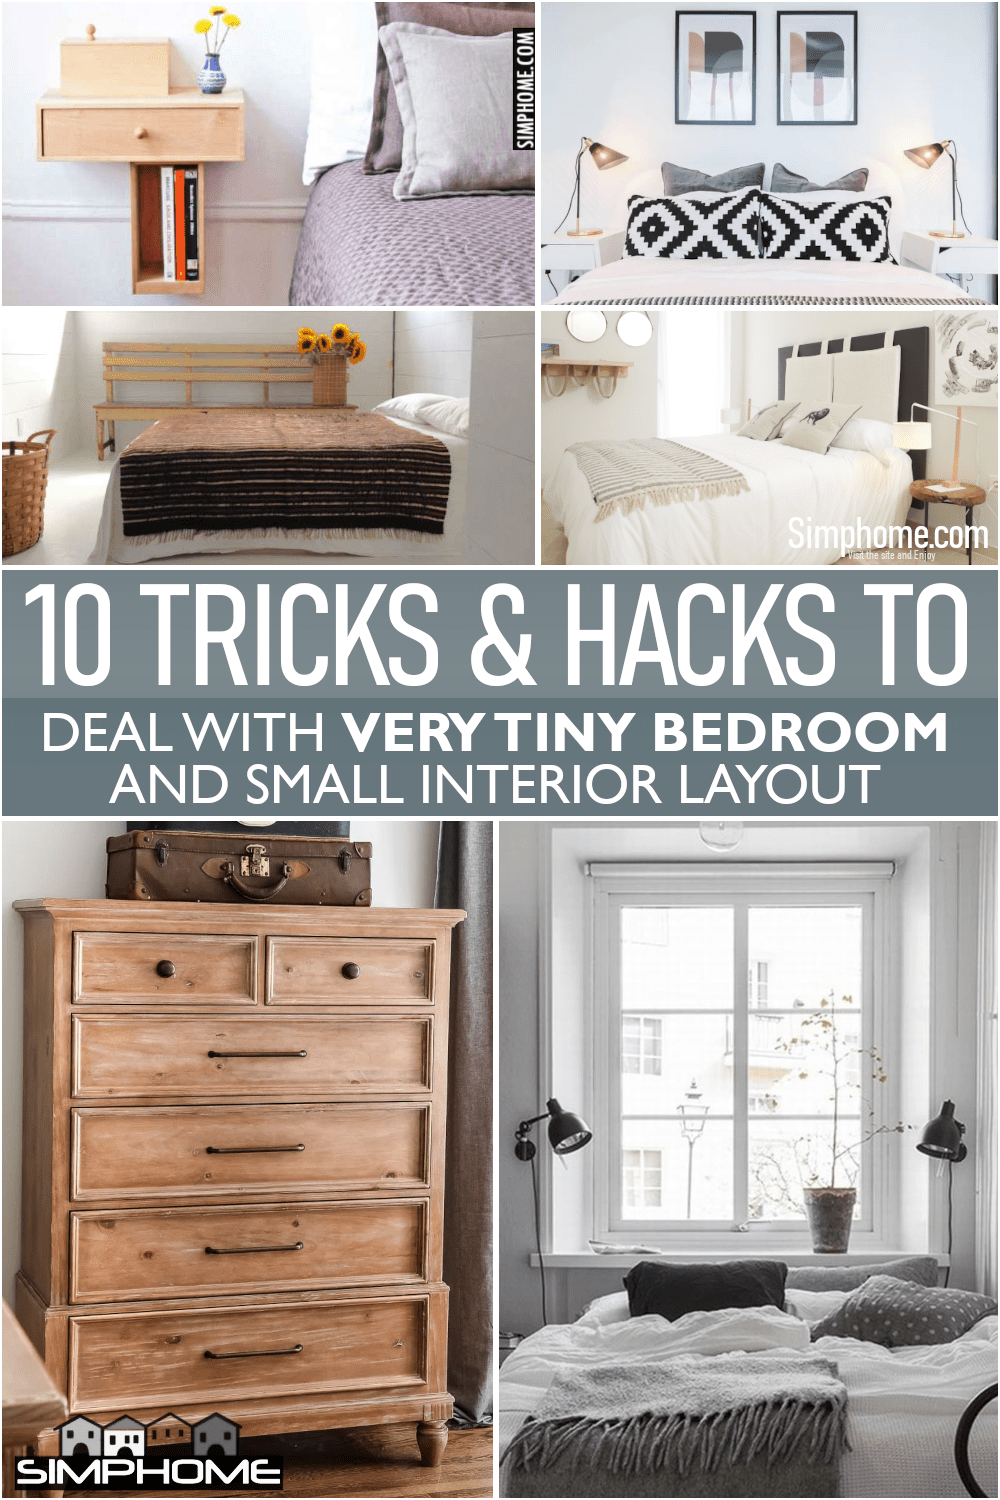 10 Tricks to Deal with a Very Tiny Bedroom via Simphome.comFeatured